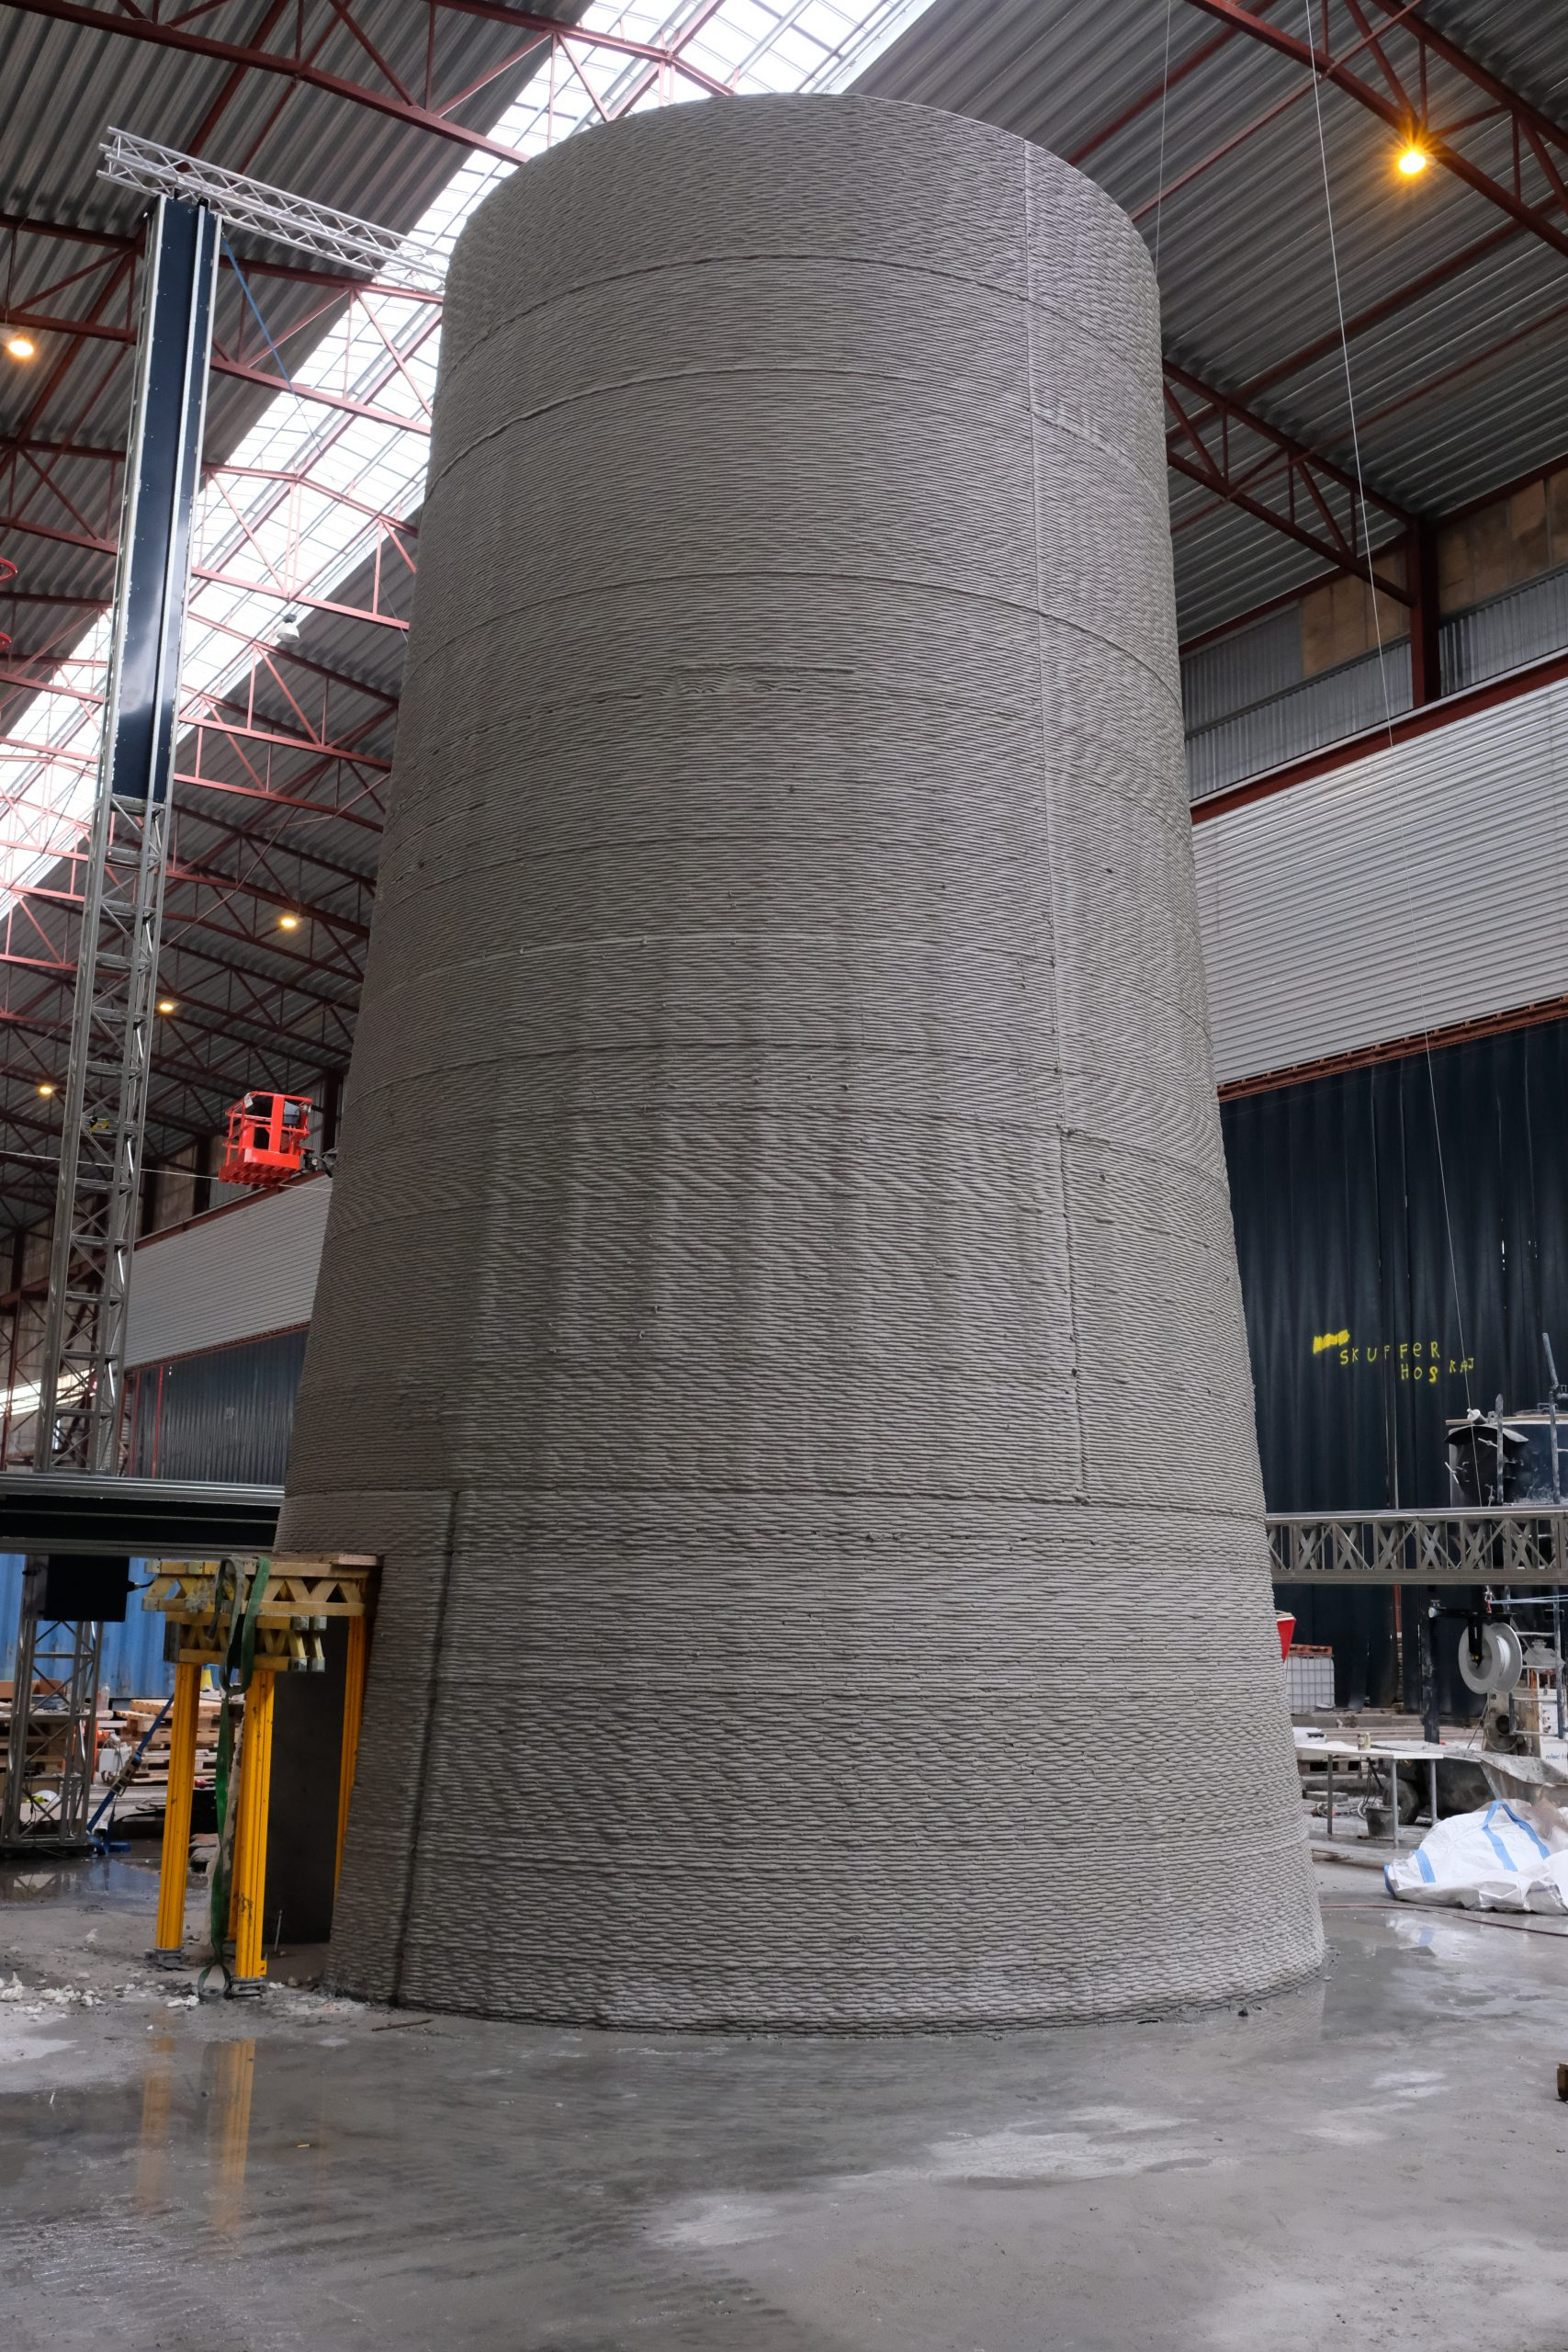 The 10-meter tall 3D printed wind turbine tower. Photo via COBOD.